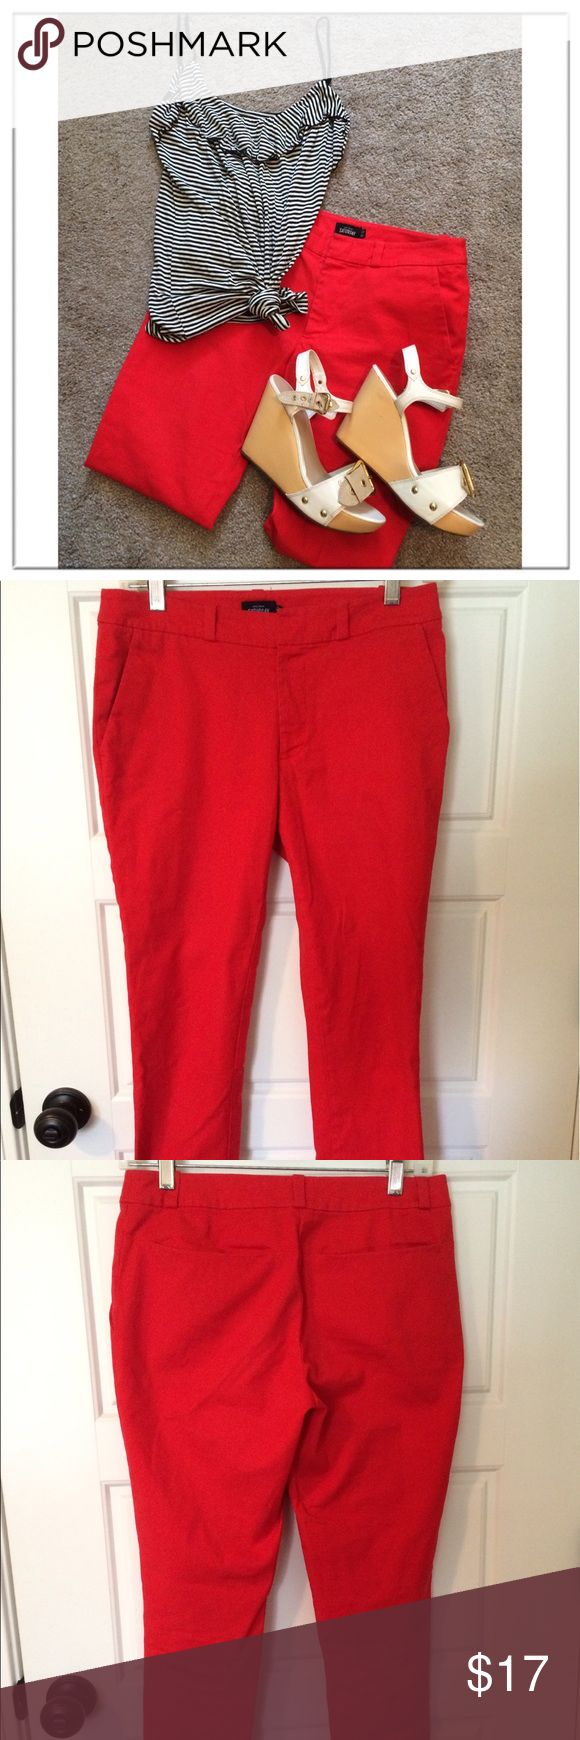 Kate Spade Skinny Pants Hardly worn! Red skinny pants. Size 00 buy fit more like a 0. 98% cotton and 2% elastane. Perfect for work. Double book front. Two front and back pockets. kate spade Pants Skinny